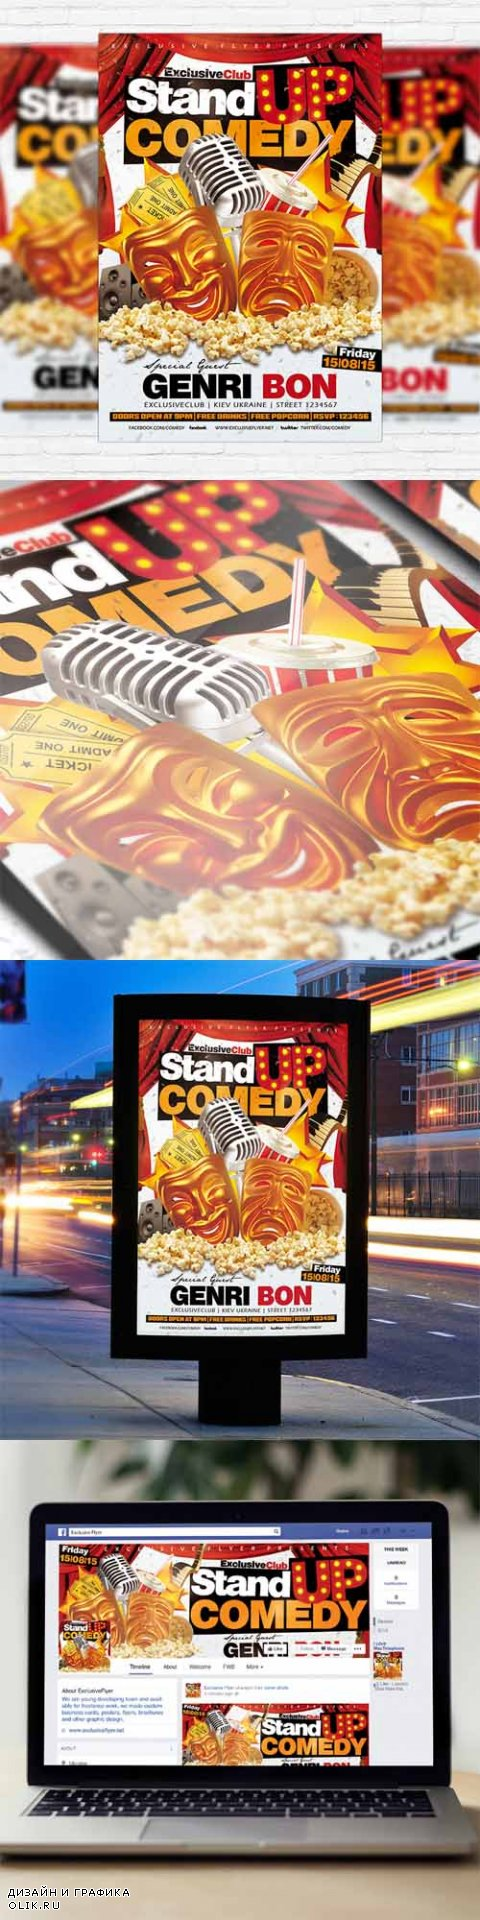 Flyer Template - Stand Up Comedy + Facebook Cover